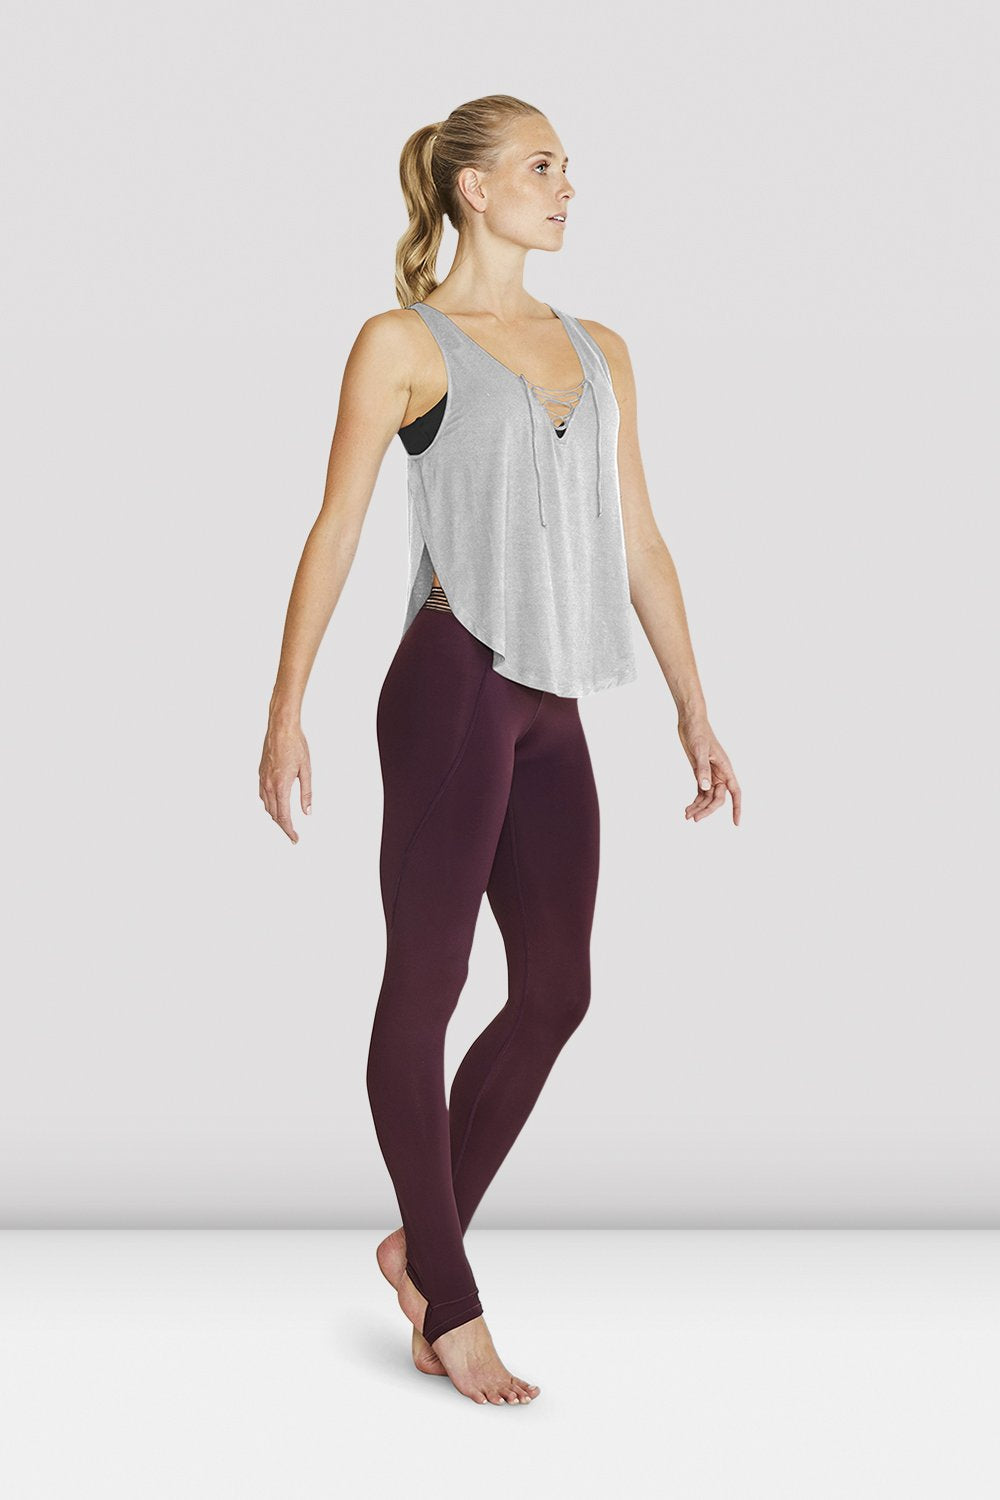 Ladies Lace Up Loose Tank - BLOCH US